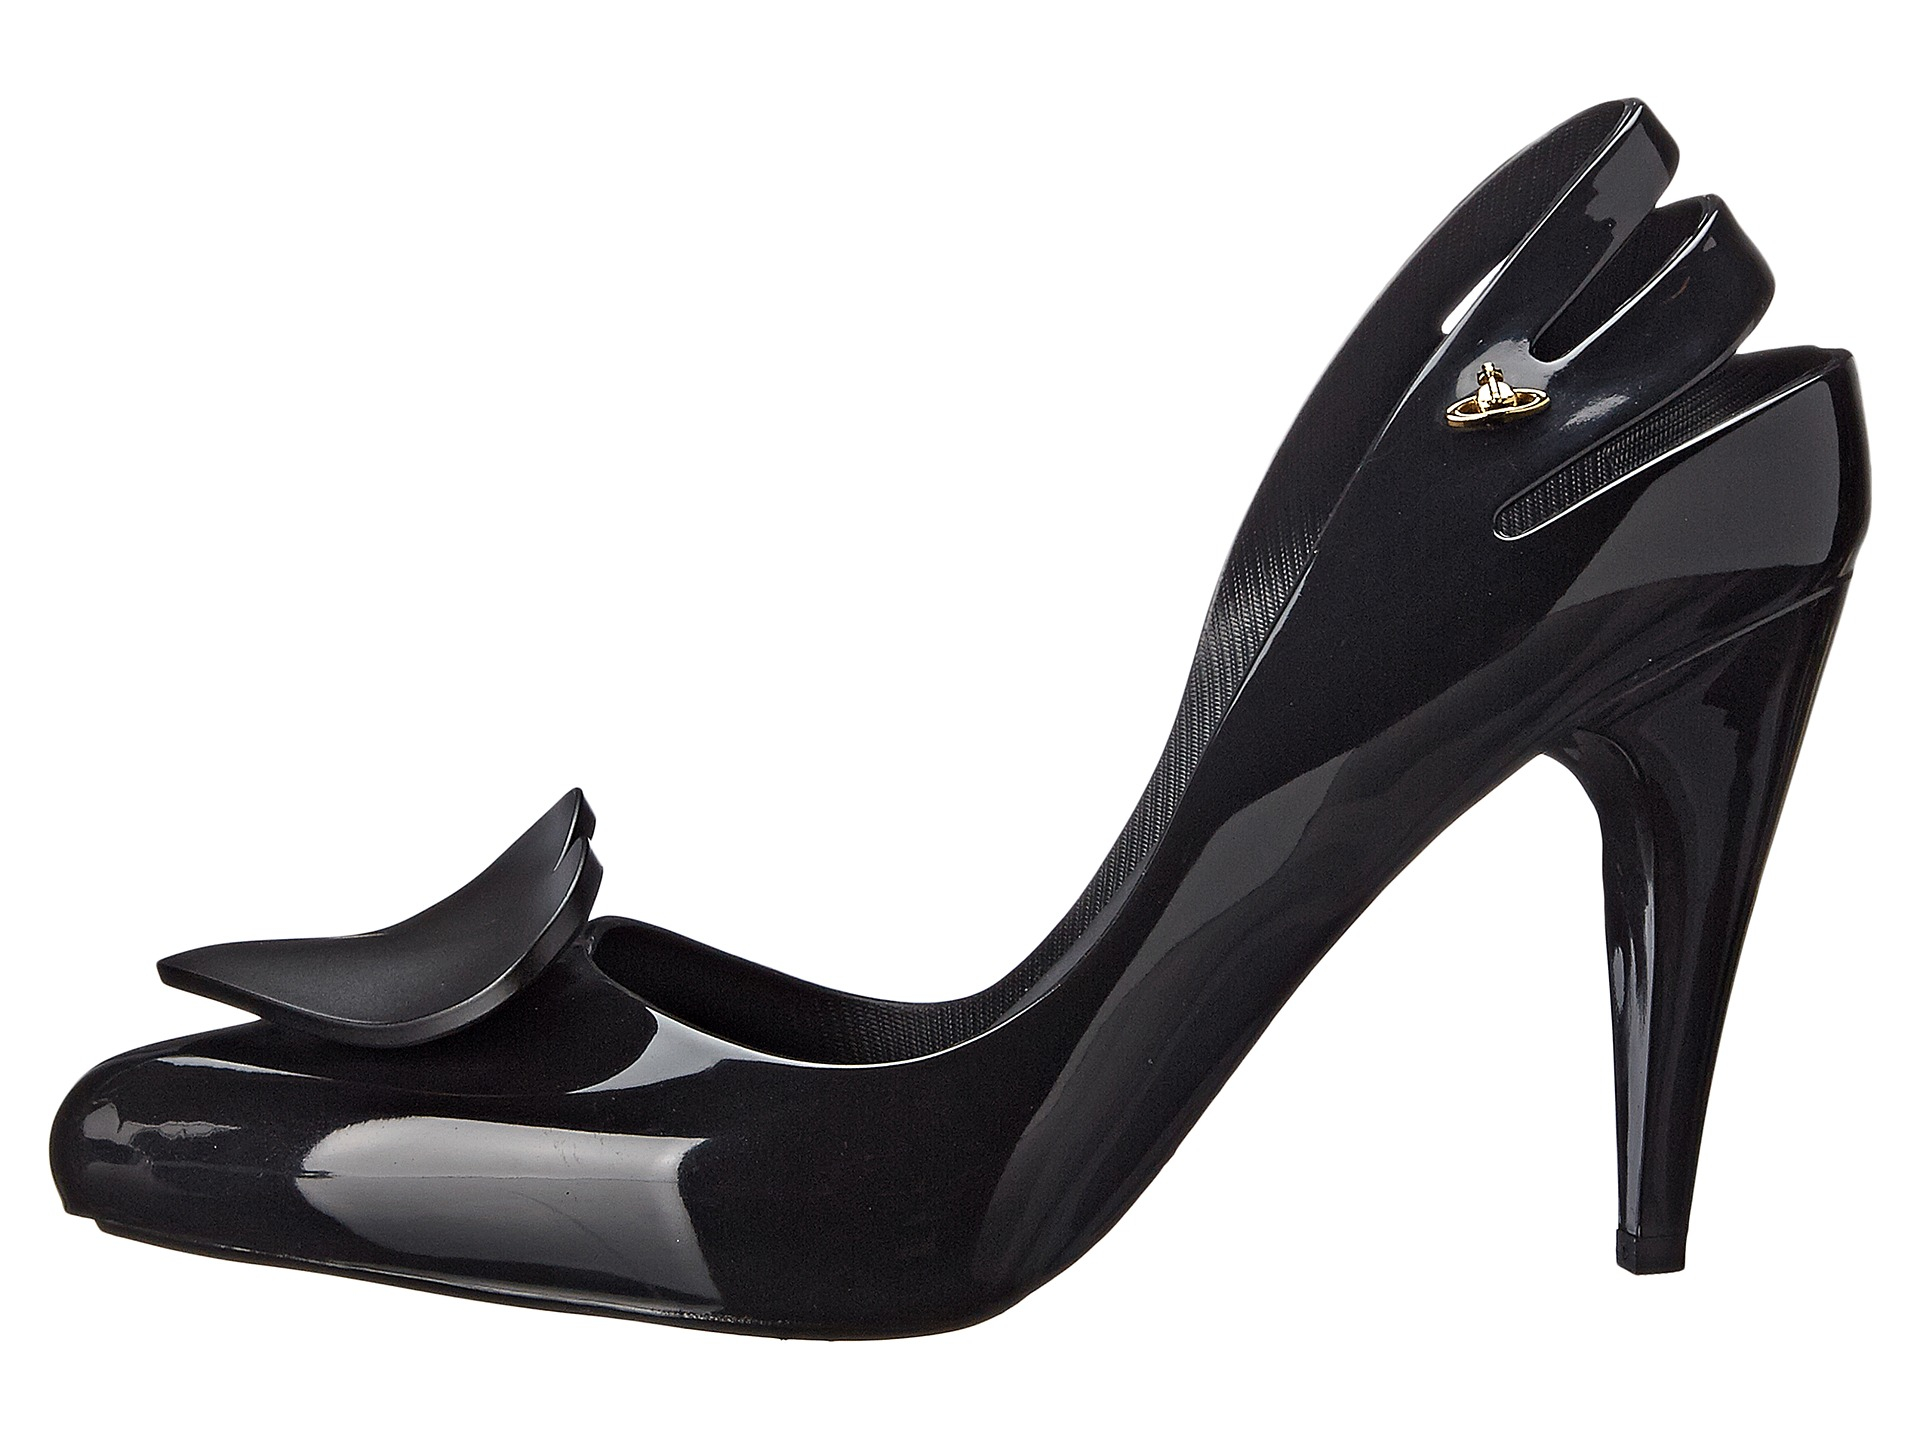 905a0bf32439 Lyst - Vivienne Westwood Anglomania + Melissa Classic Heel in Black